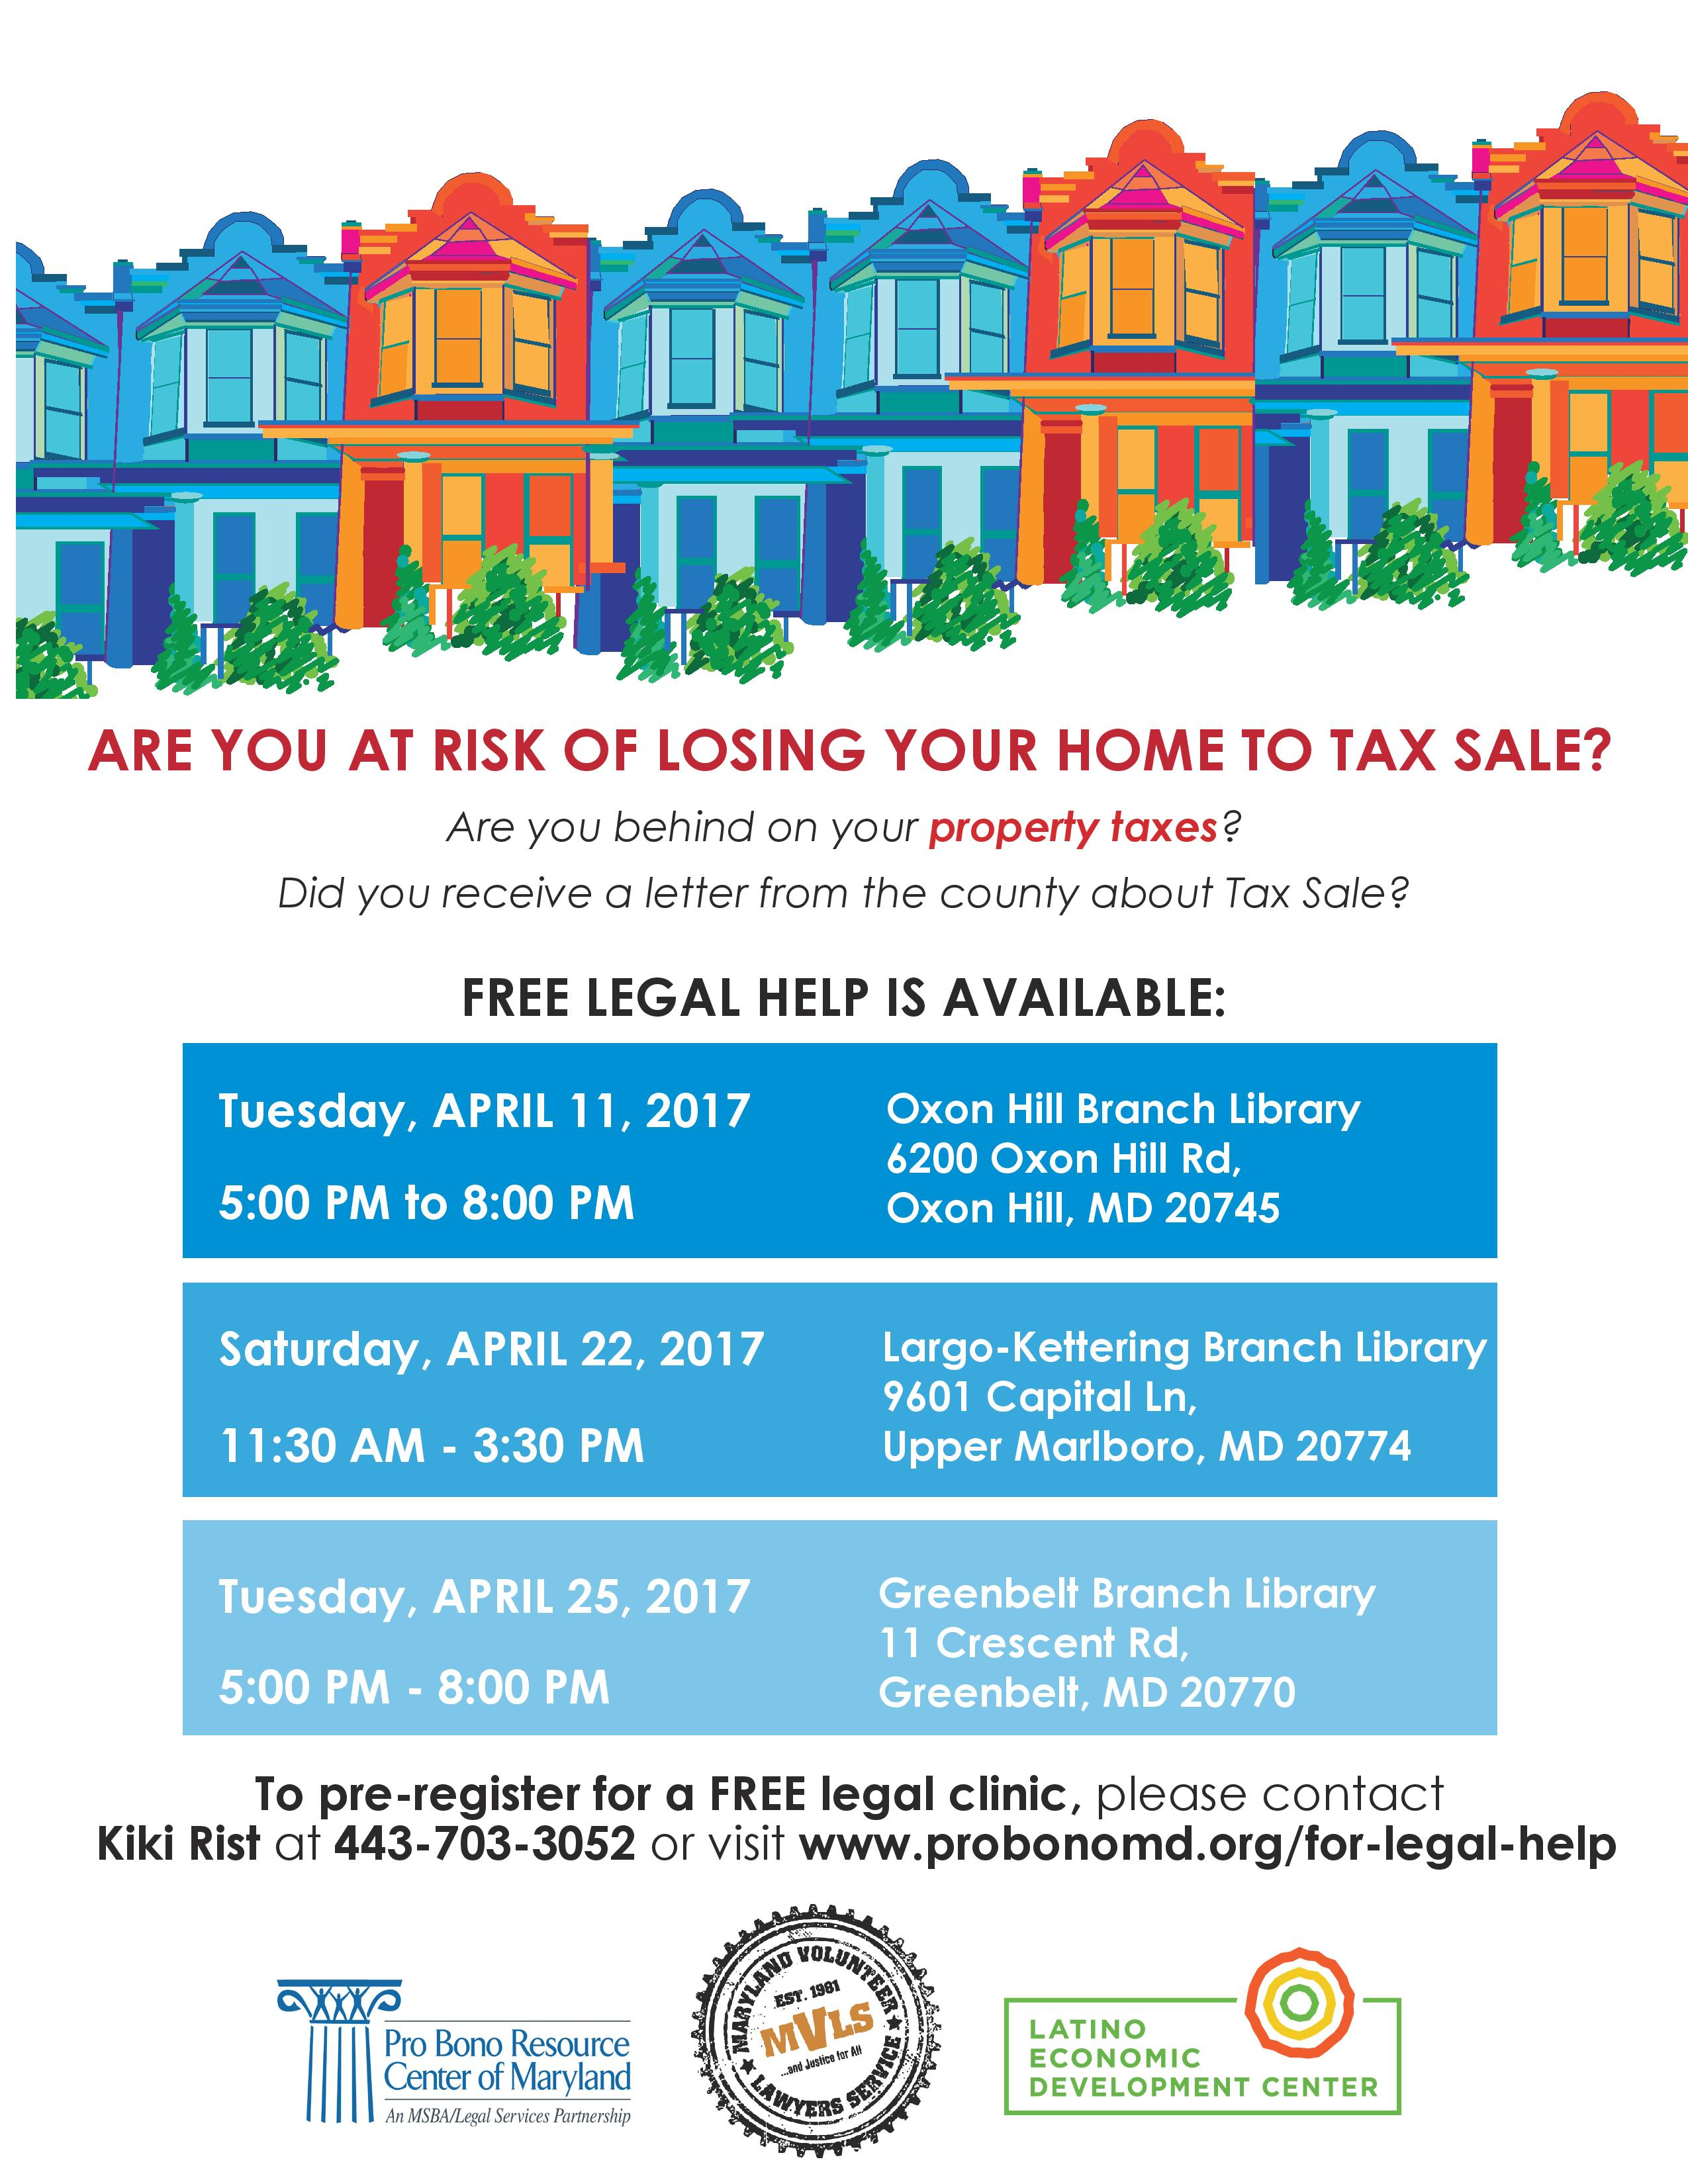 Free Legal Advice for Prince George's County Homeowners